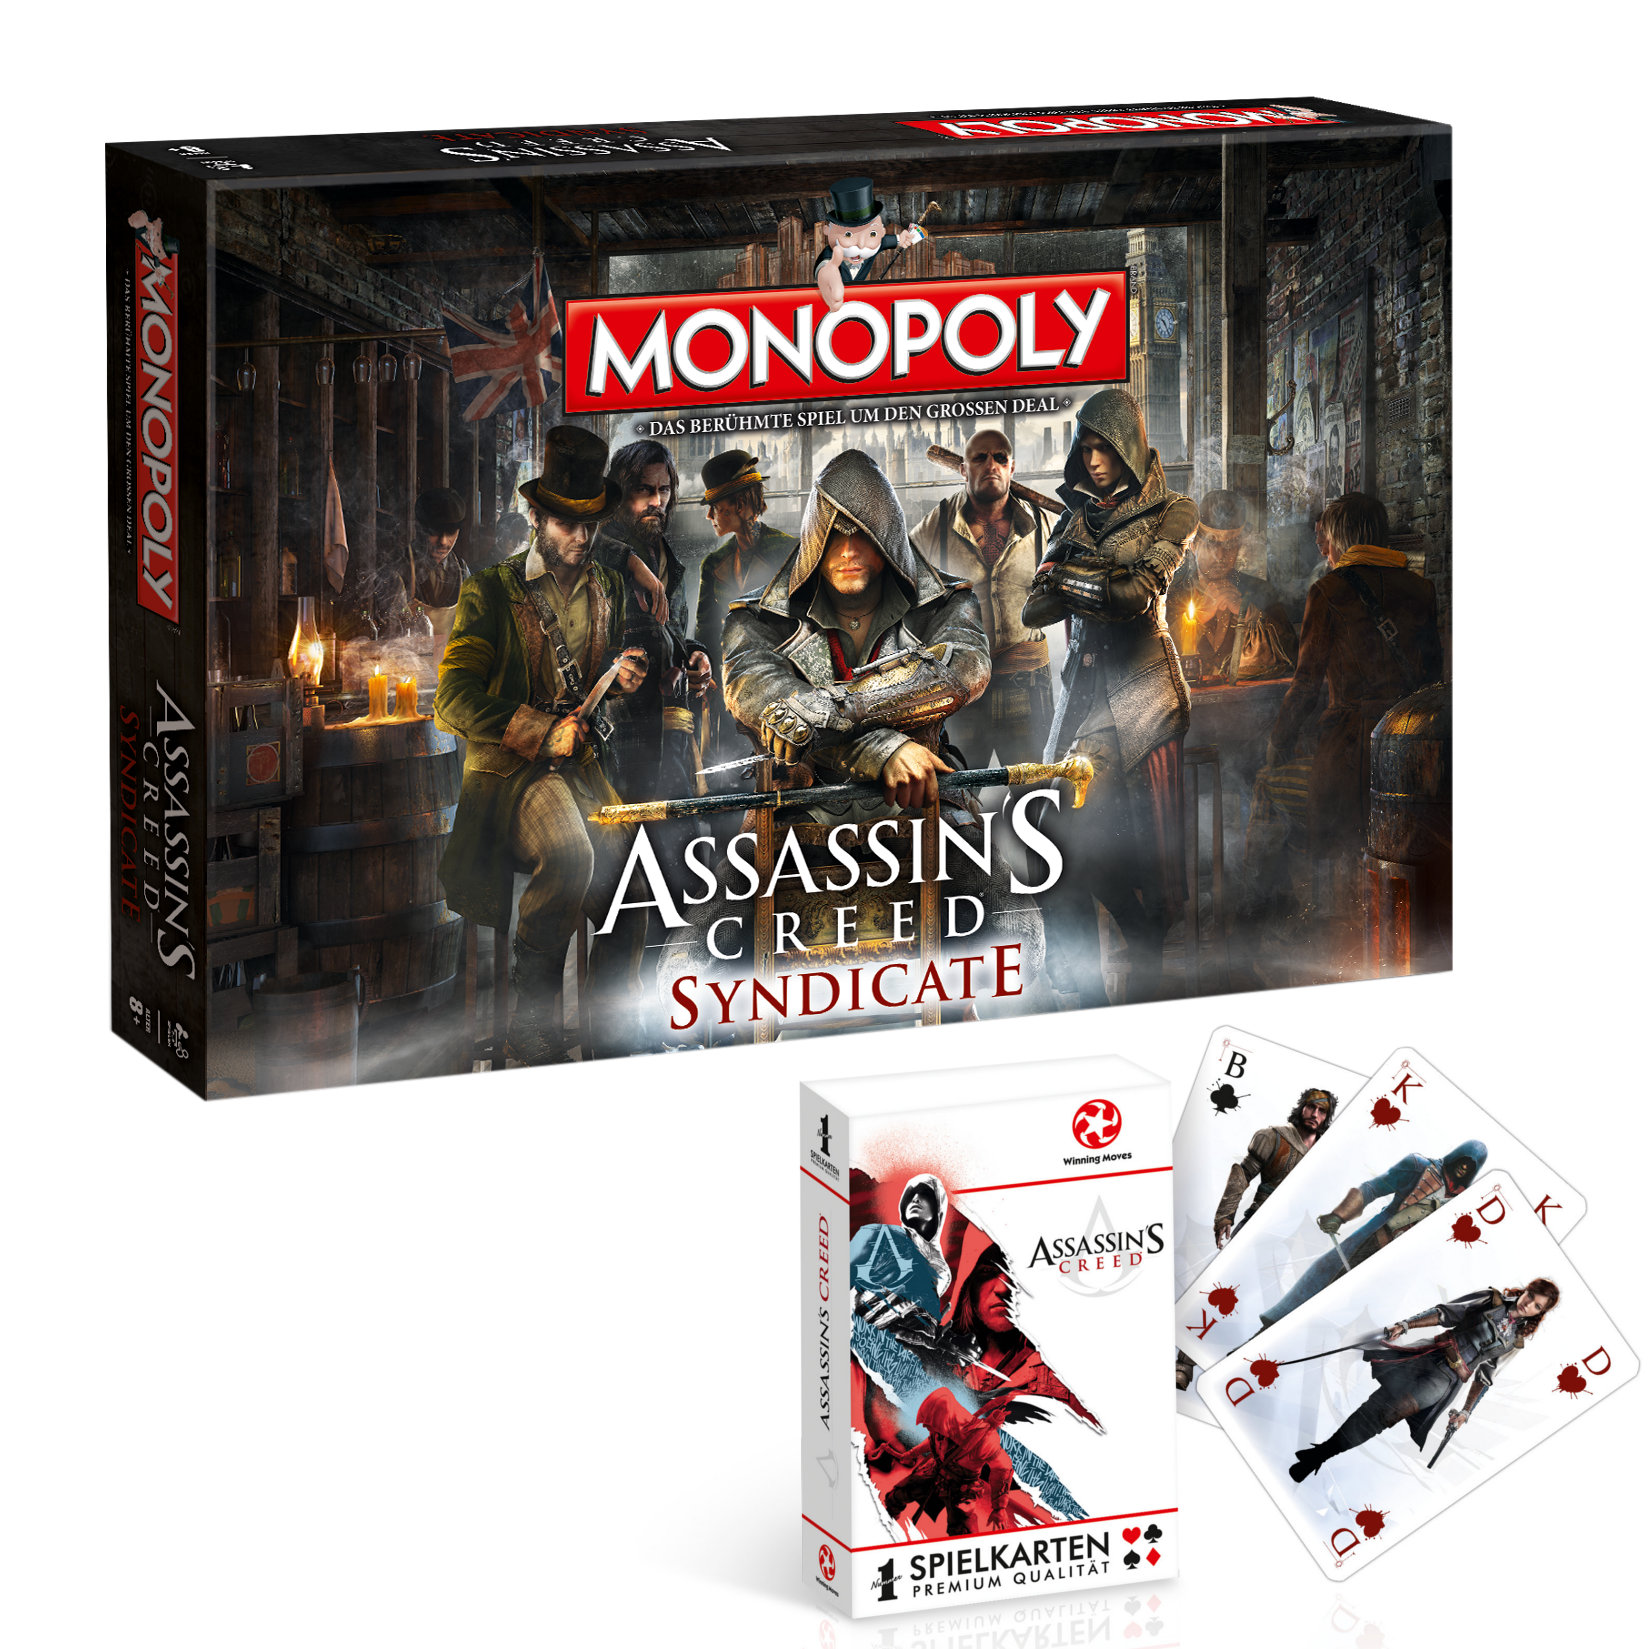 Monopoly Assassin's Creed Syndicate + Kartenspiel